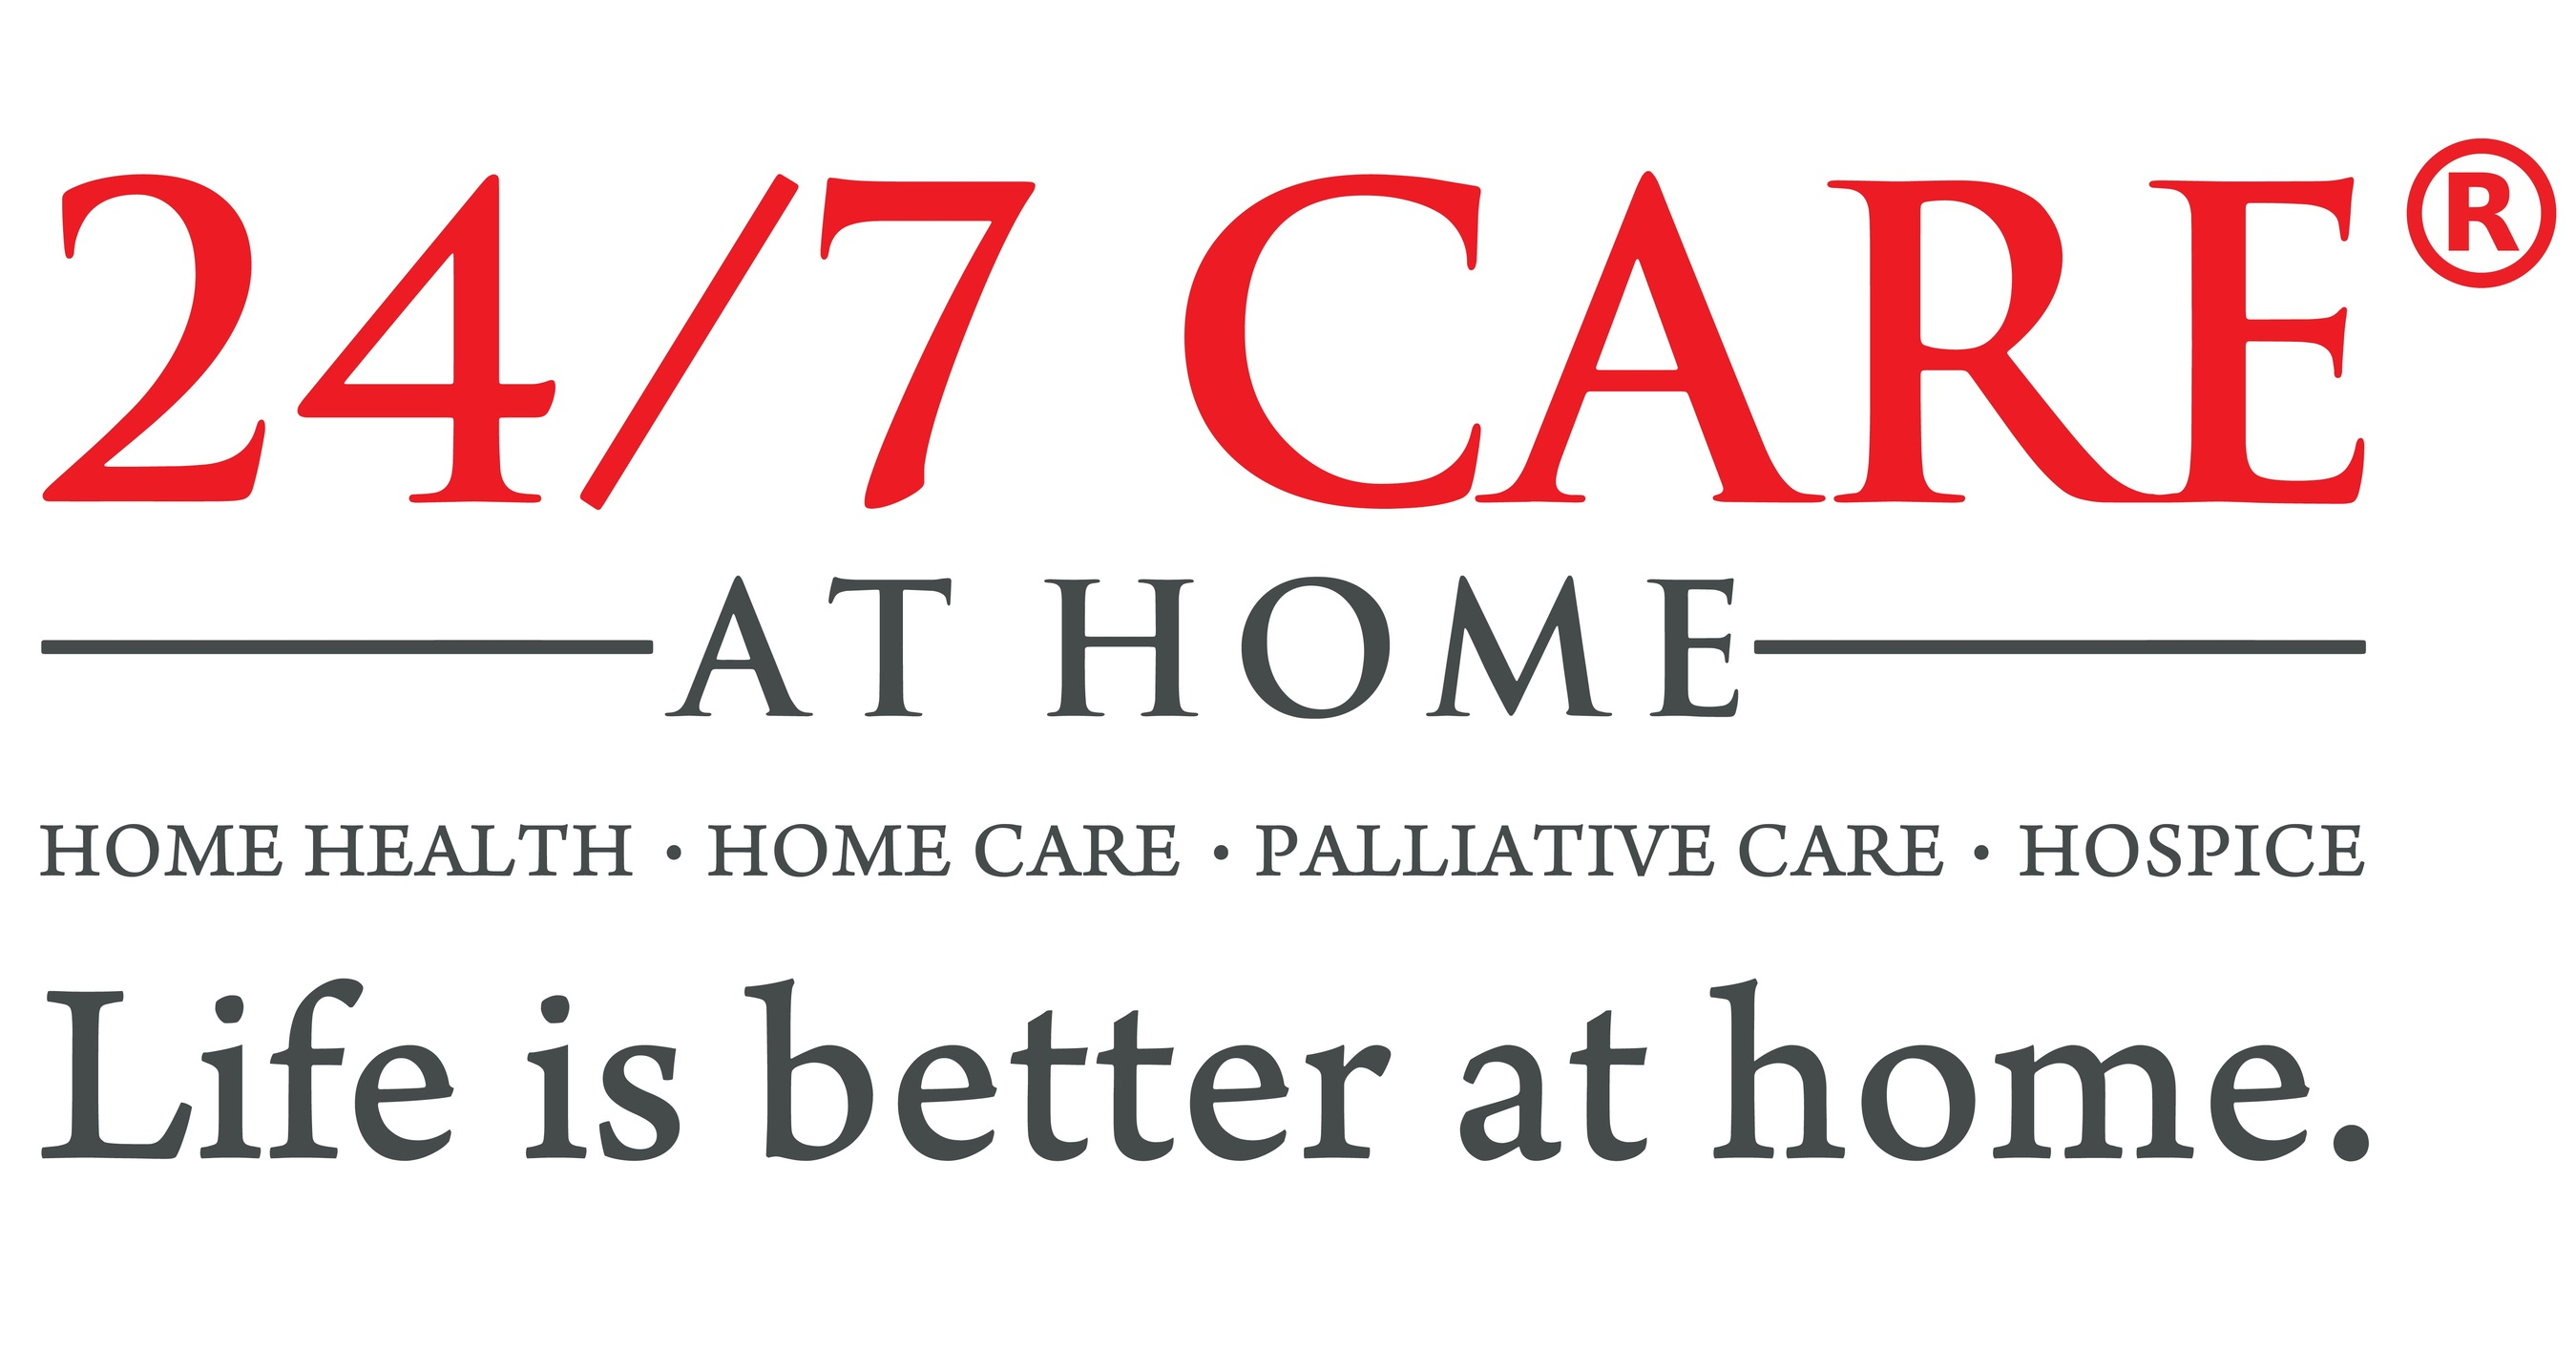 24 7 care at home logo